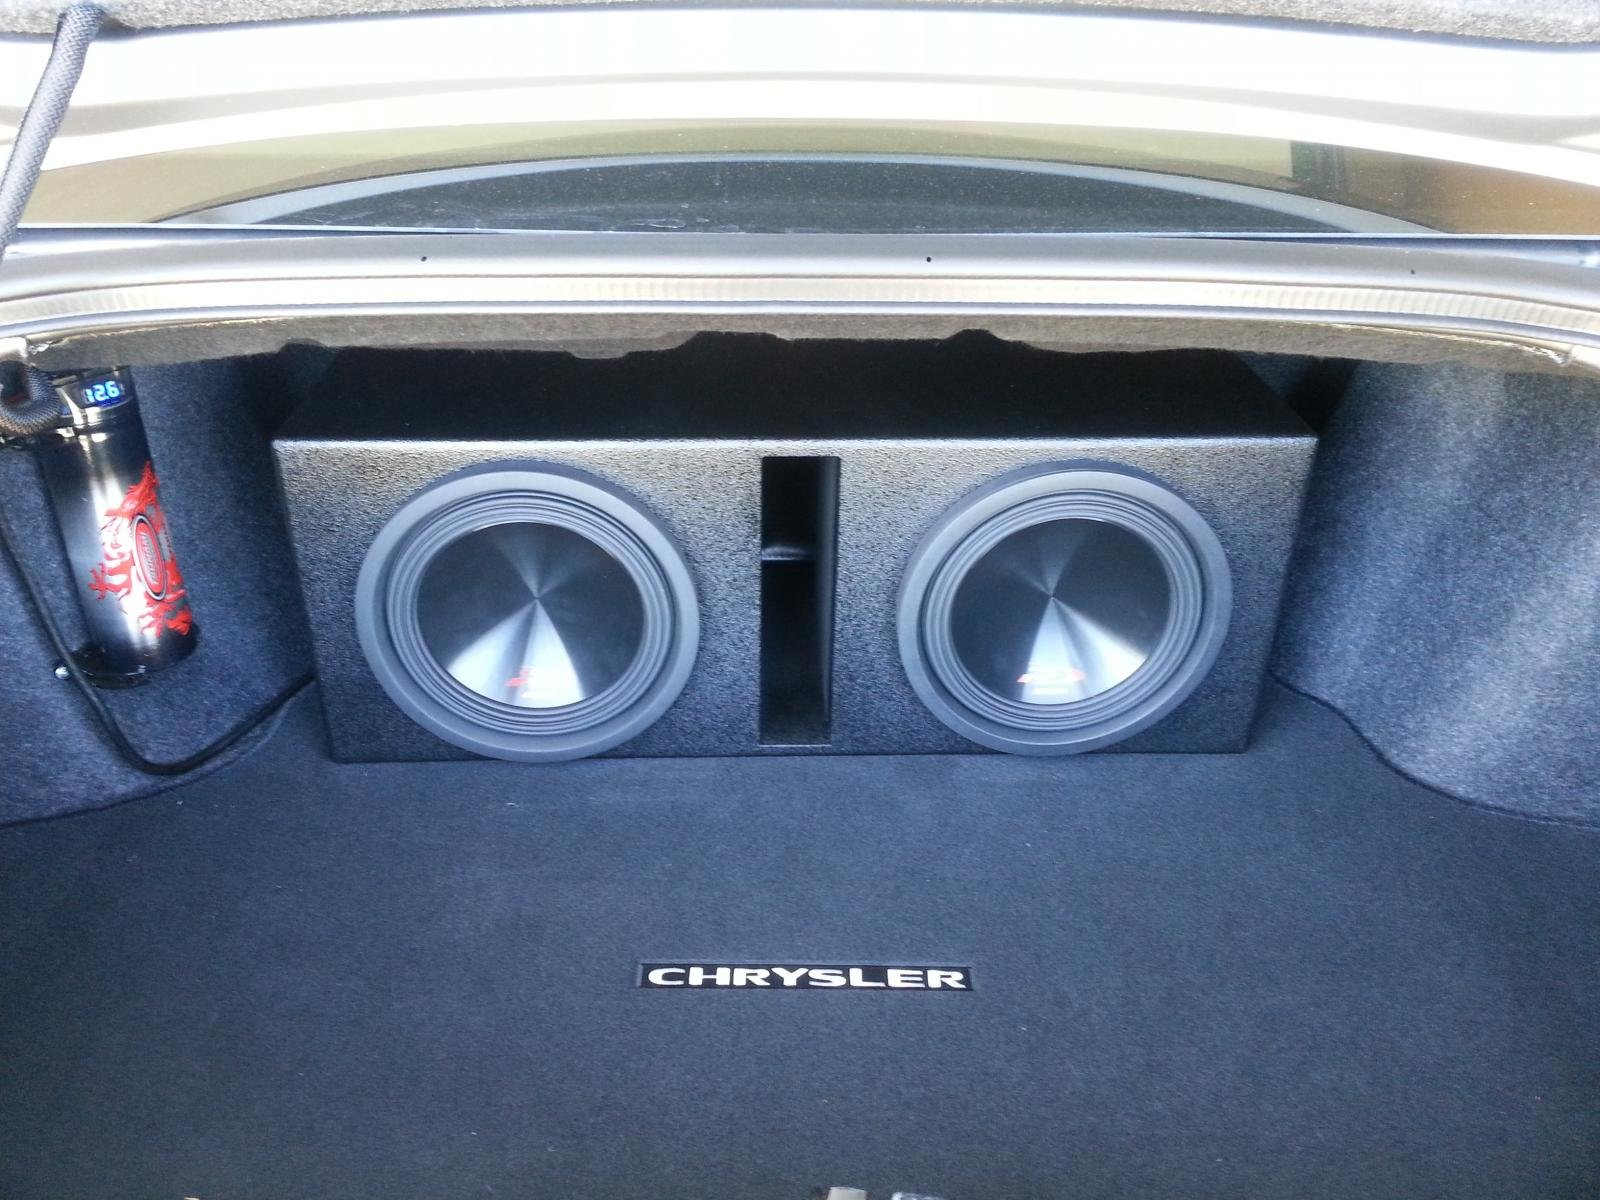 Chrysler the sound of stereo #3